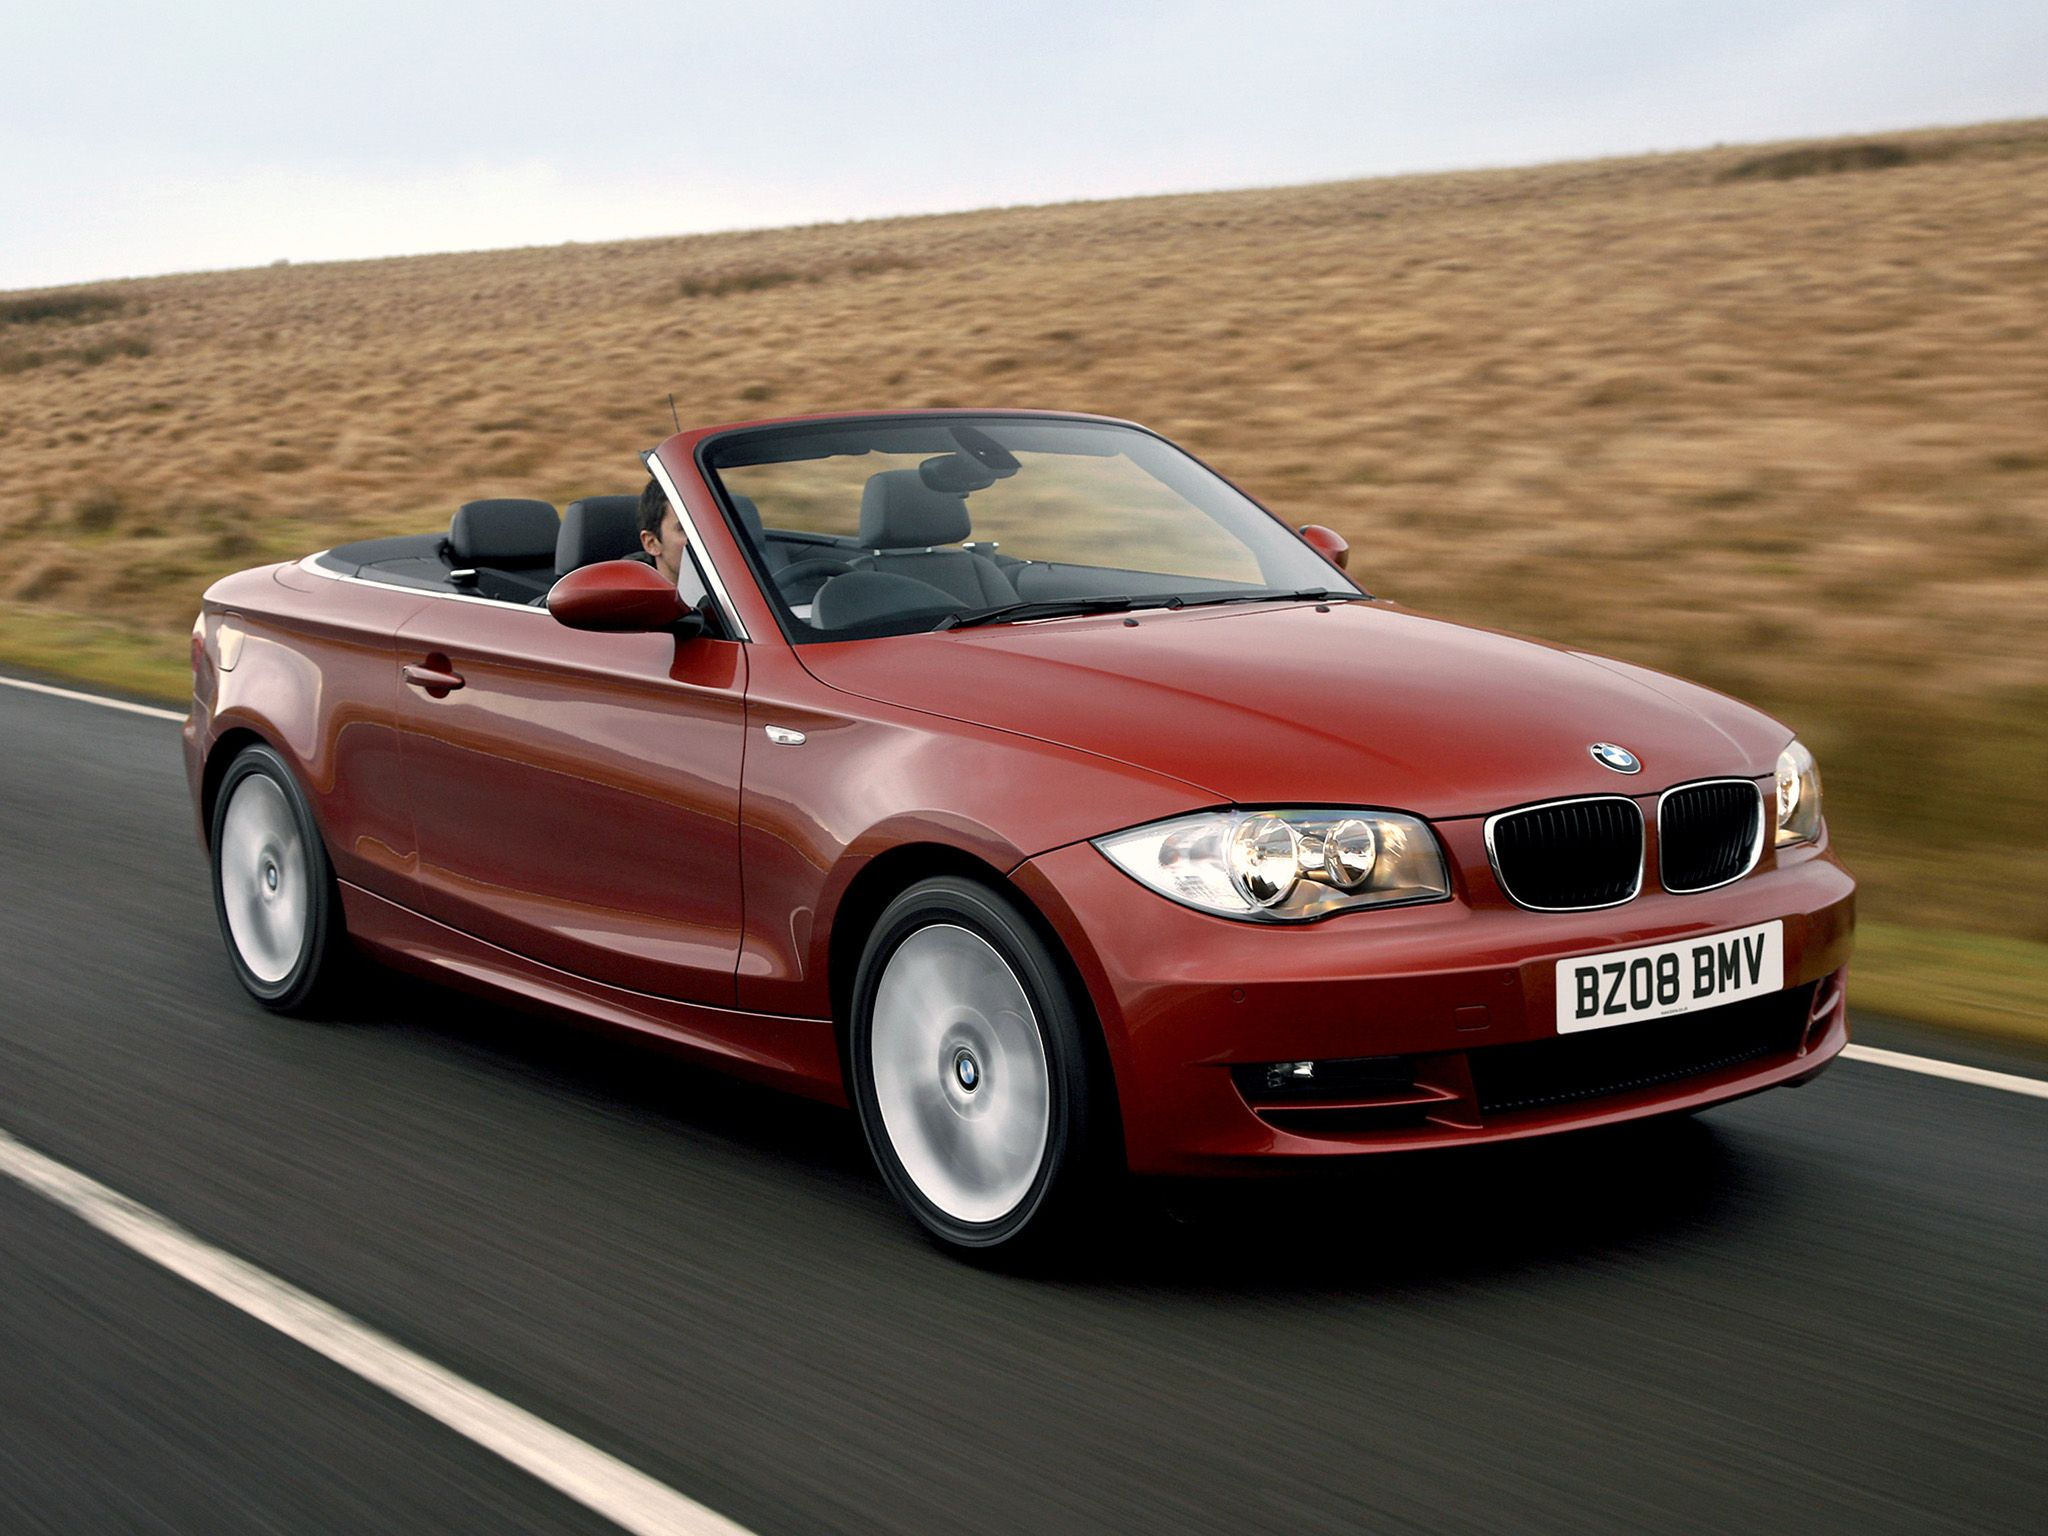 E88 Bmw 125i Convertible In Vermillion Red